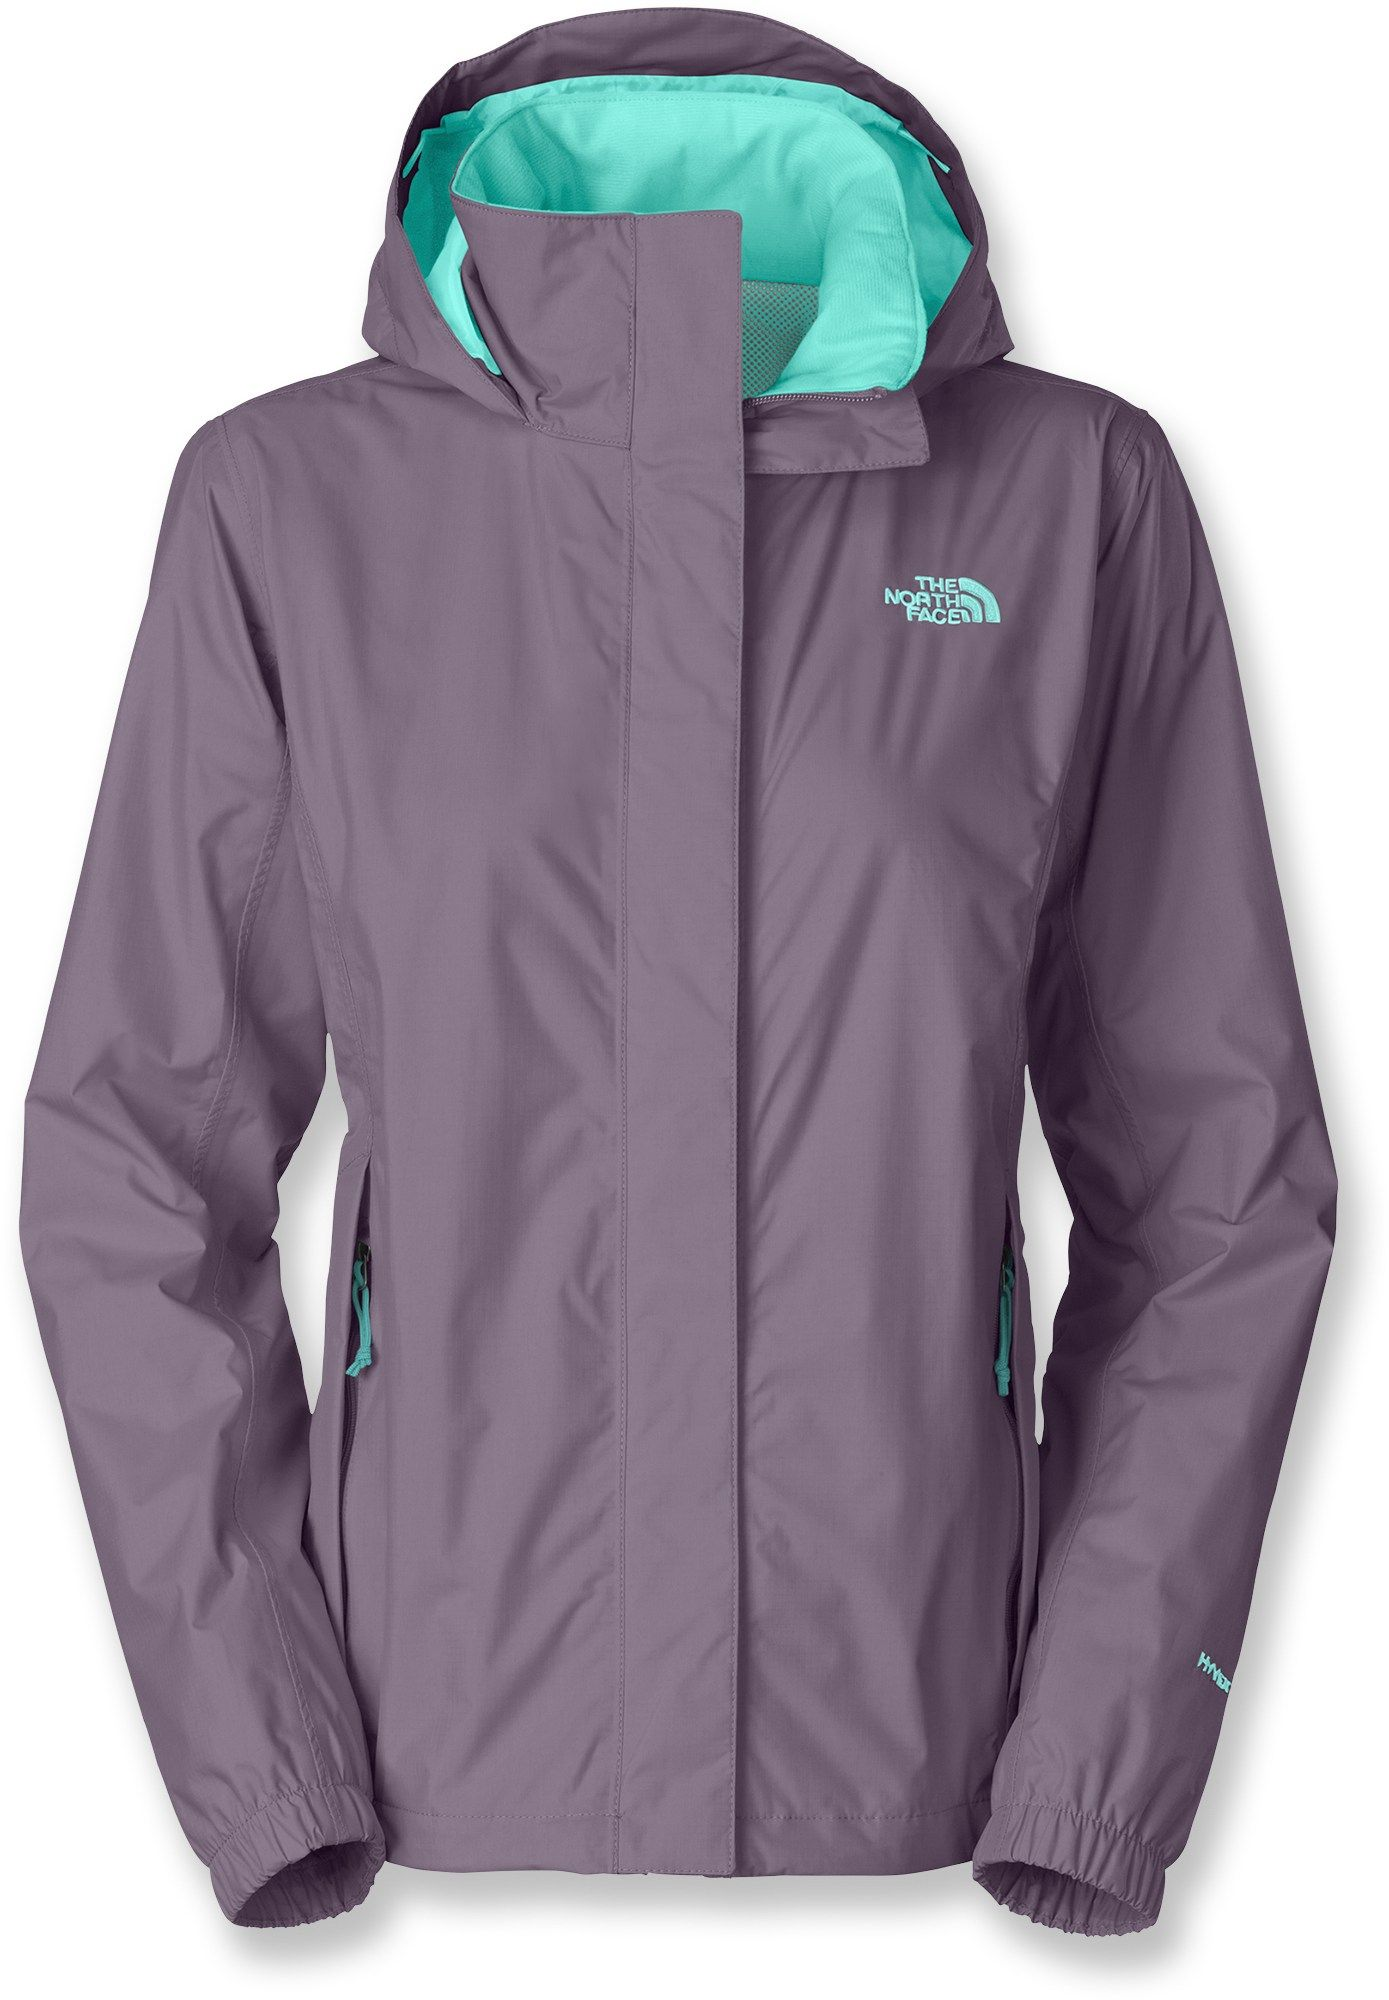 The North Face Resolve Rain Jacket - Women's | REI Co-op ...